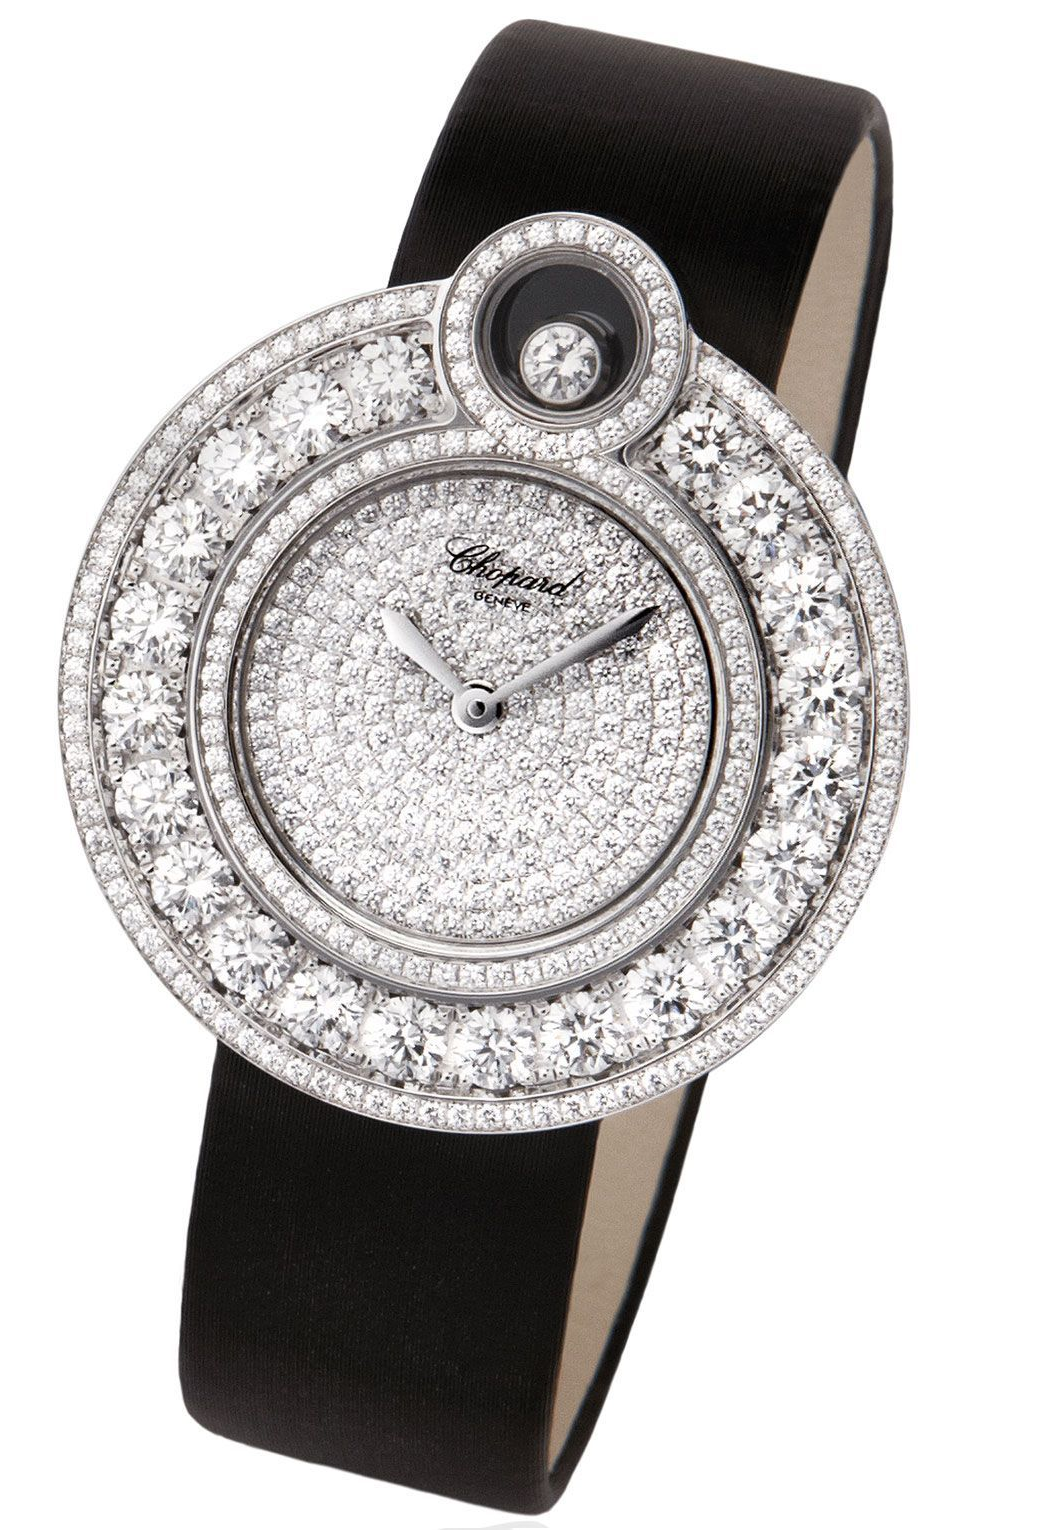 BEST WOMEN'S Bling WATCHES 2021 Beautiful Metal Round Watch with Diamond Hallo and Black Leather Strap